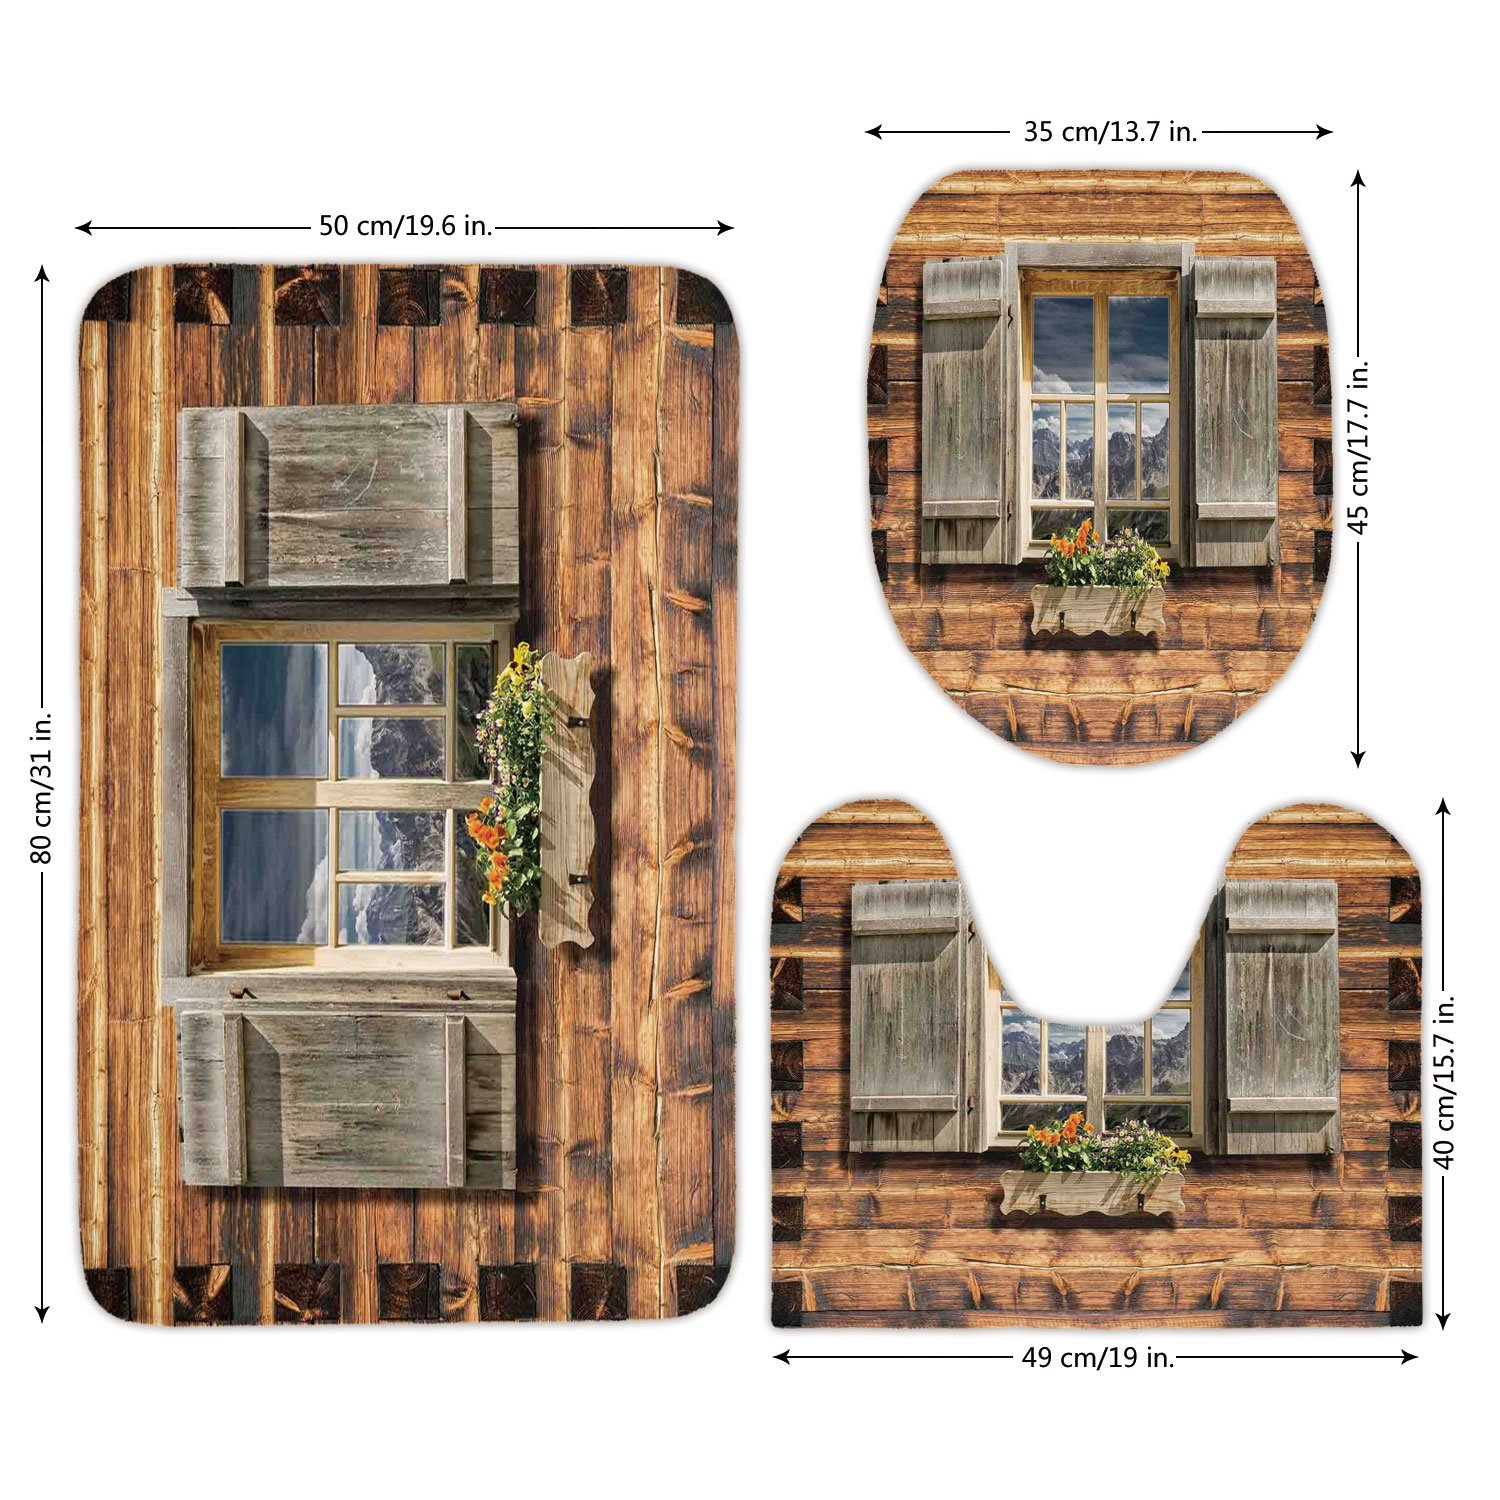 3 Piece Bathroom Mat Set,Shutters,Weathered Facade of A Mountain Hut with Summer Mountain Reflections on Window,Brown Green,Bath Mat,Bathroom Carpet Rug,Non-Slip